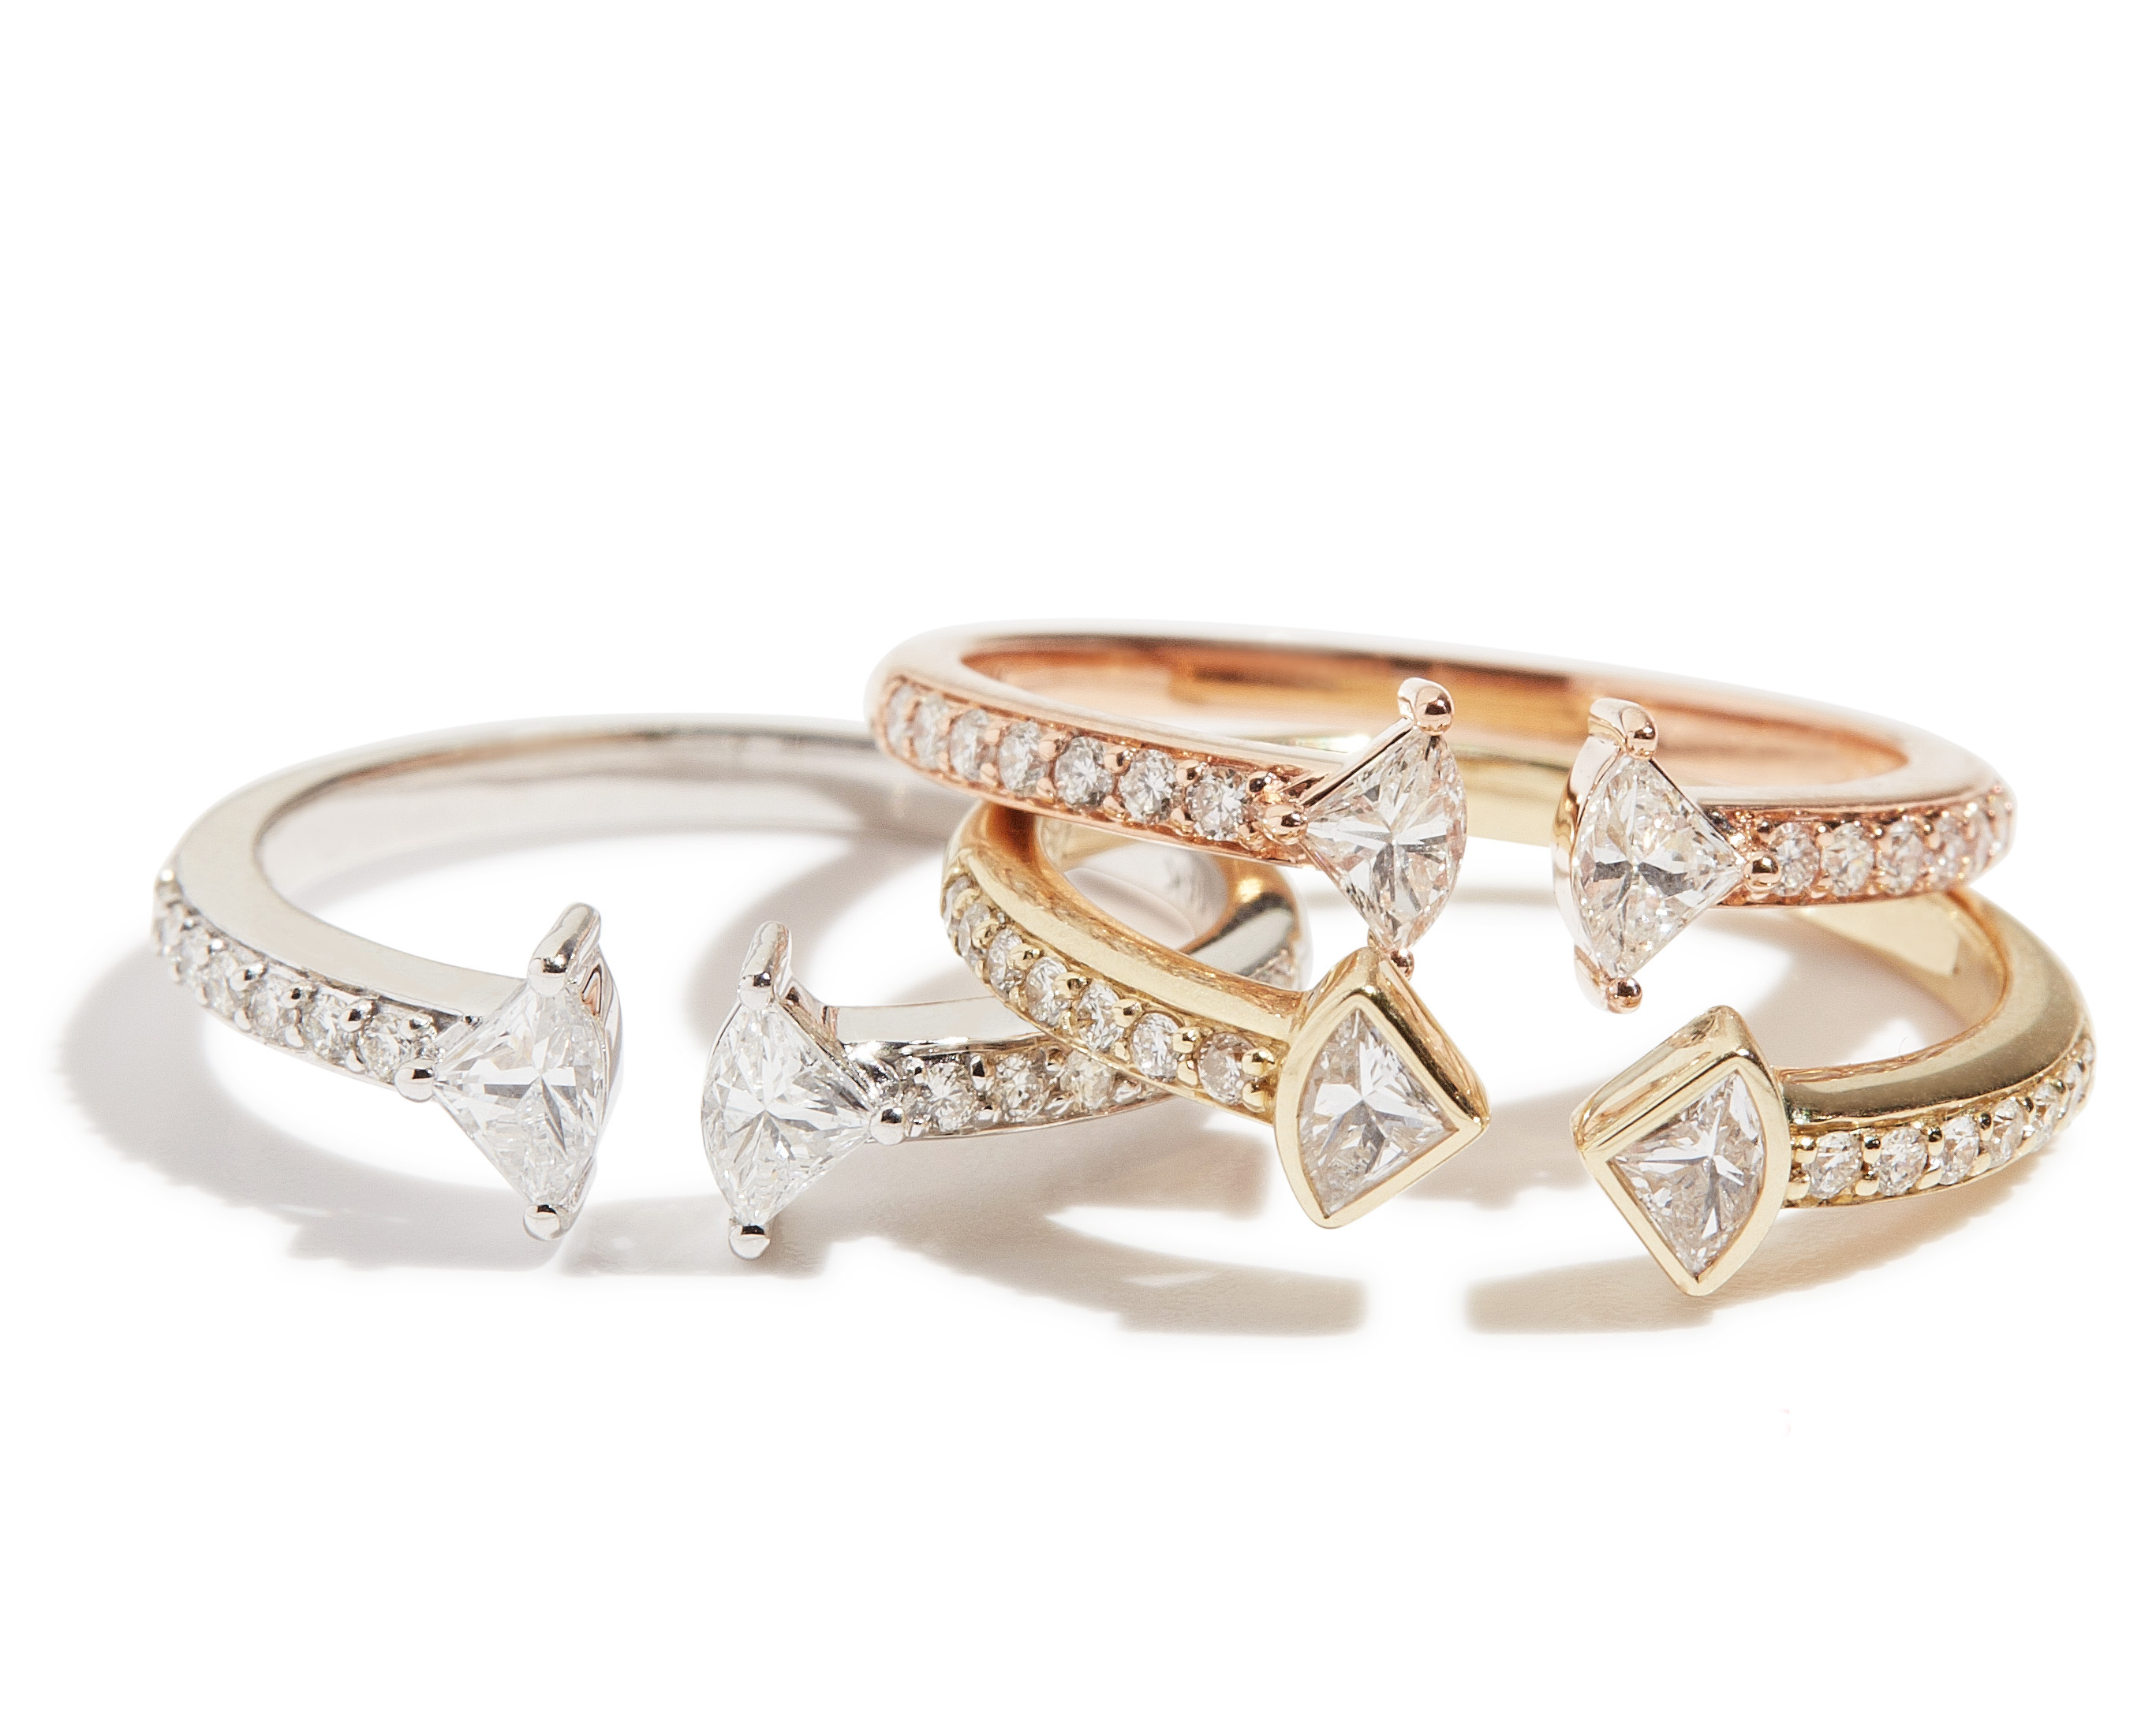 los-angeles-ca-jewelry-product-photographer